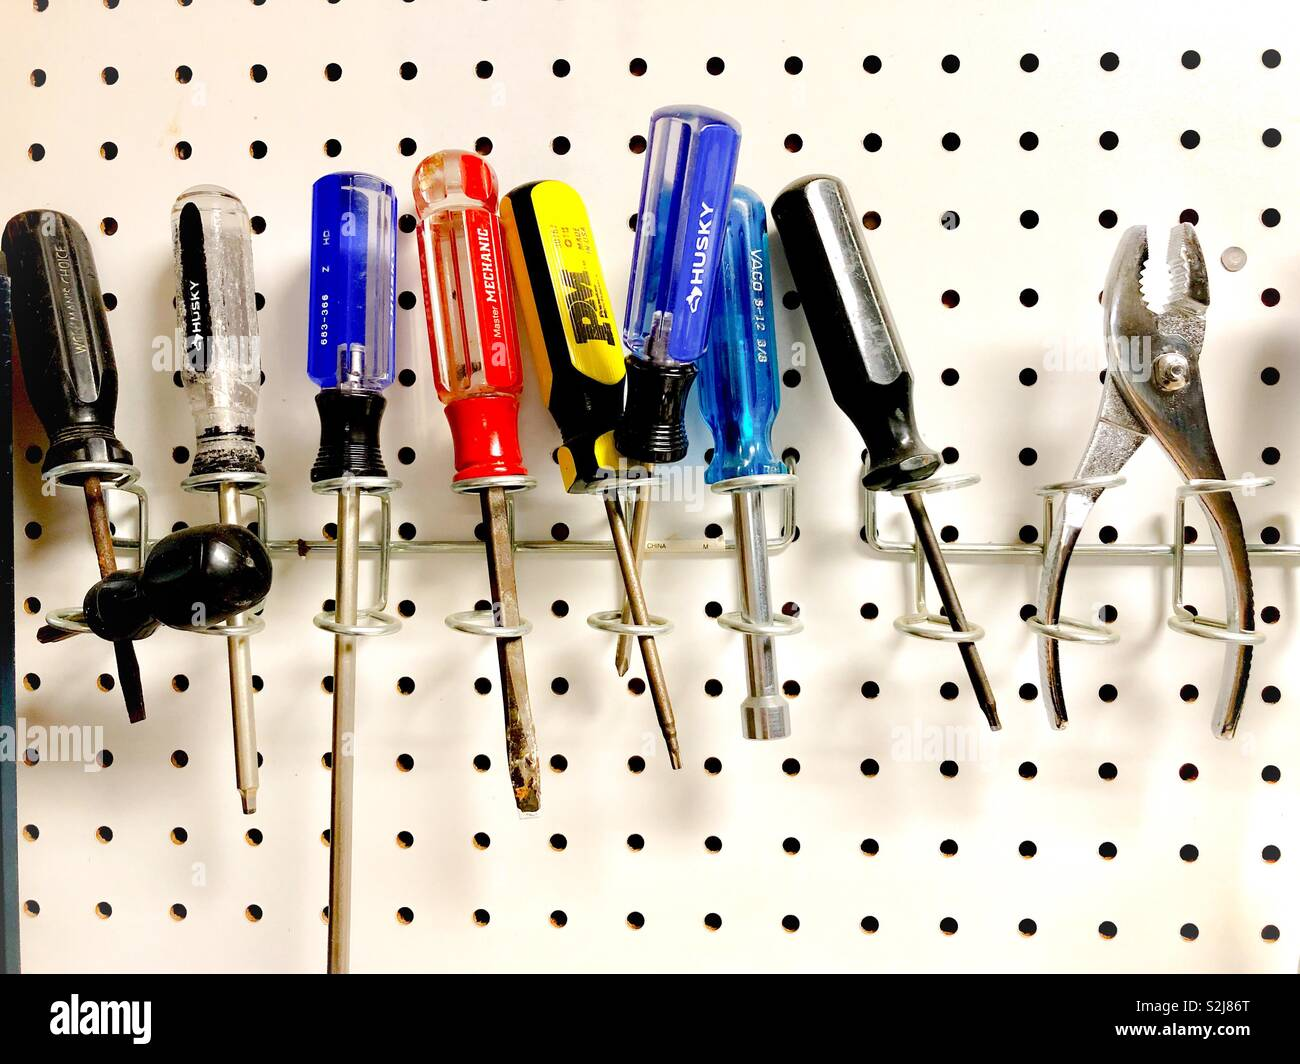 Tools on a peg board - Stock Image